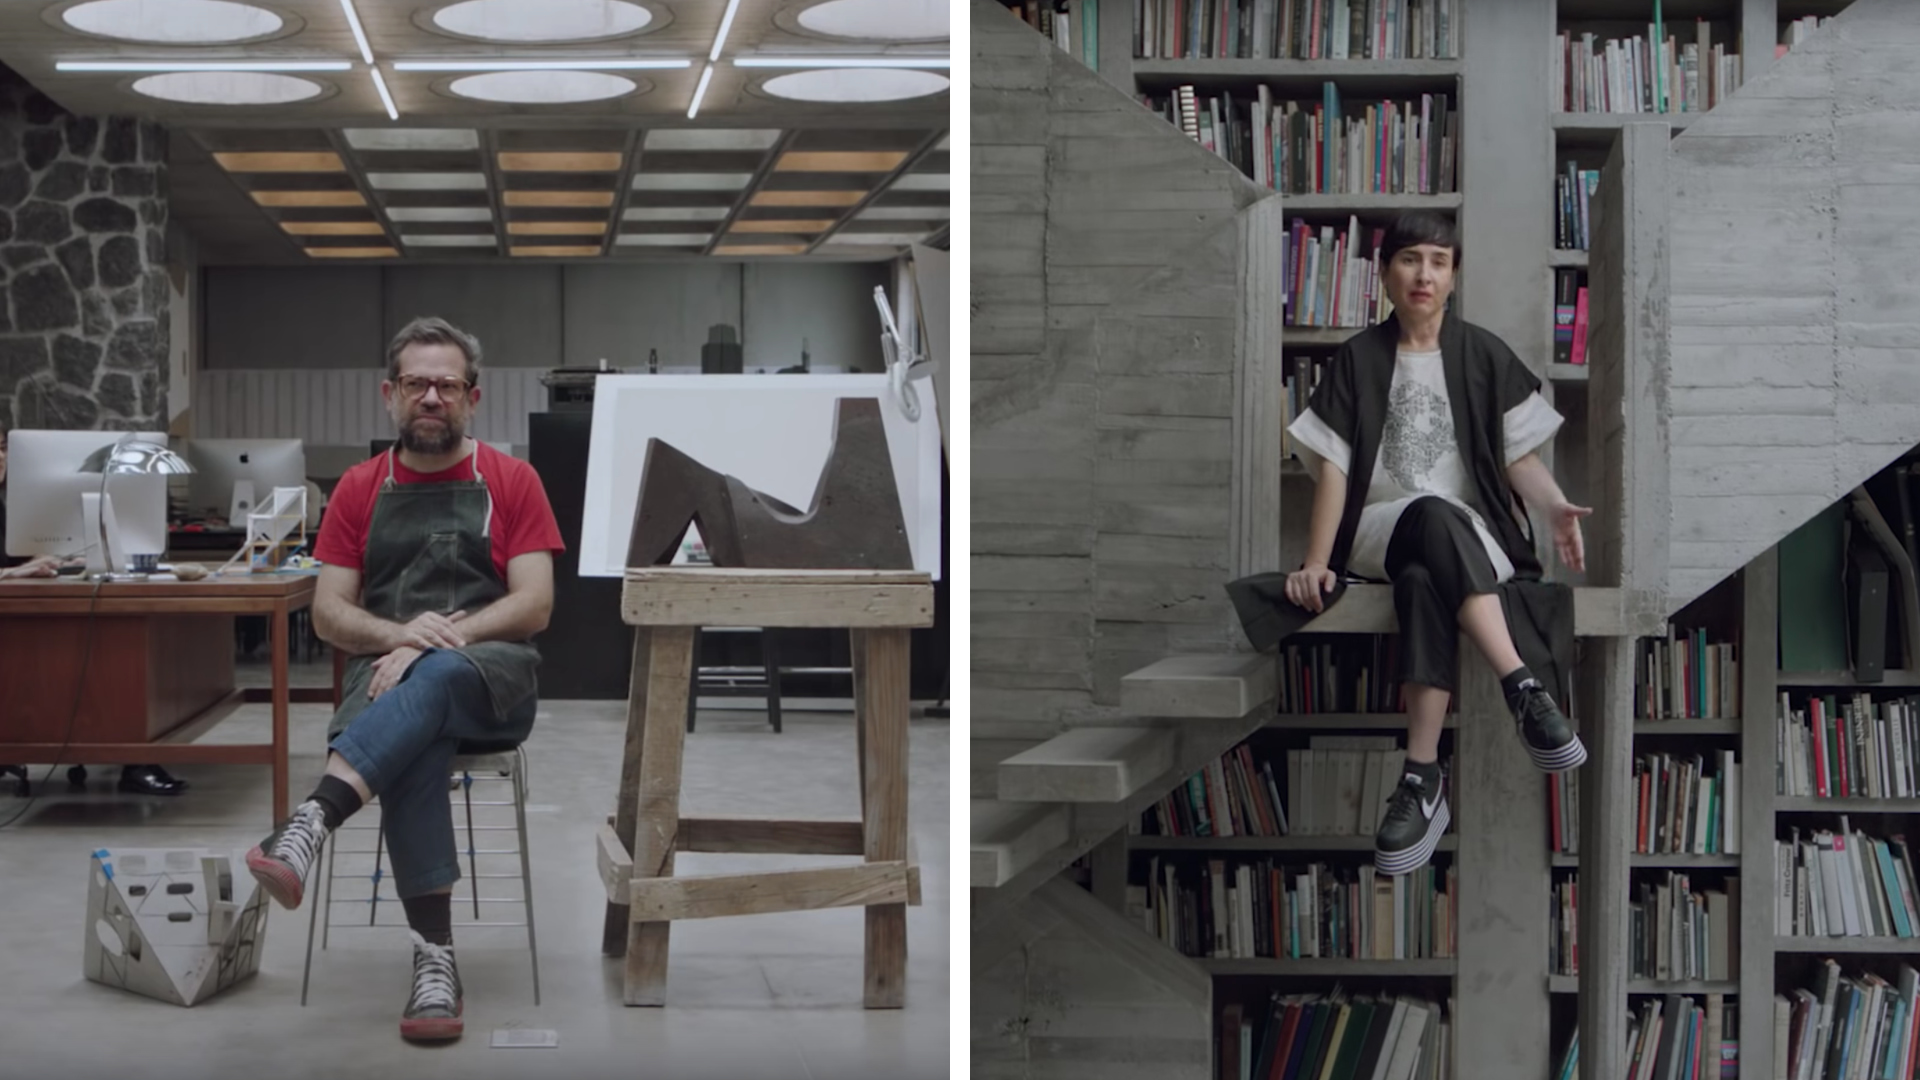 Inside the house of celebrated artist Pedro Reyes and fashion designer Carla Fernández, in Coyoacán, Mexico City | Pedro Reyes & Carla Fernández | In Residence | Nowness | STIRworld